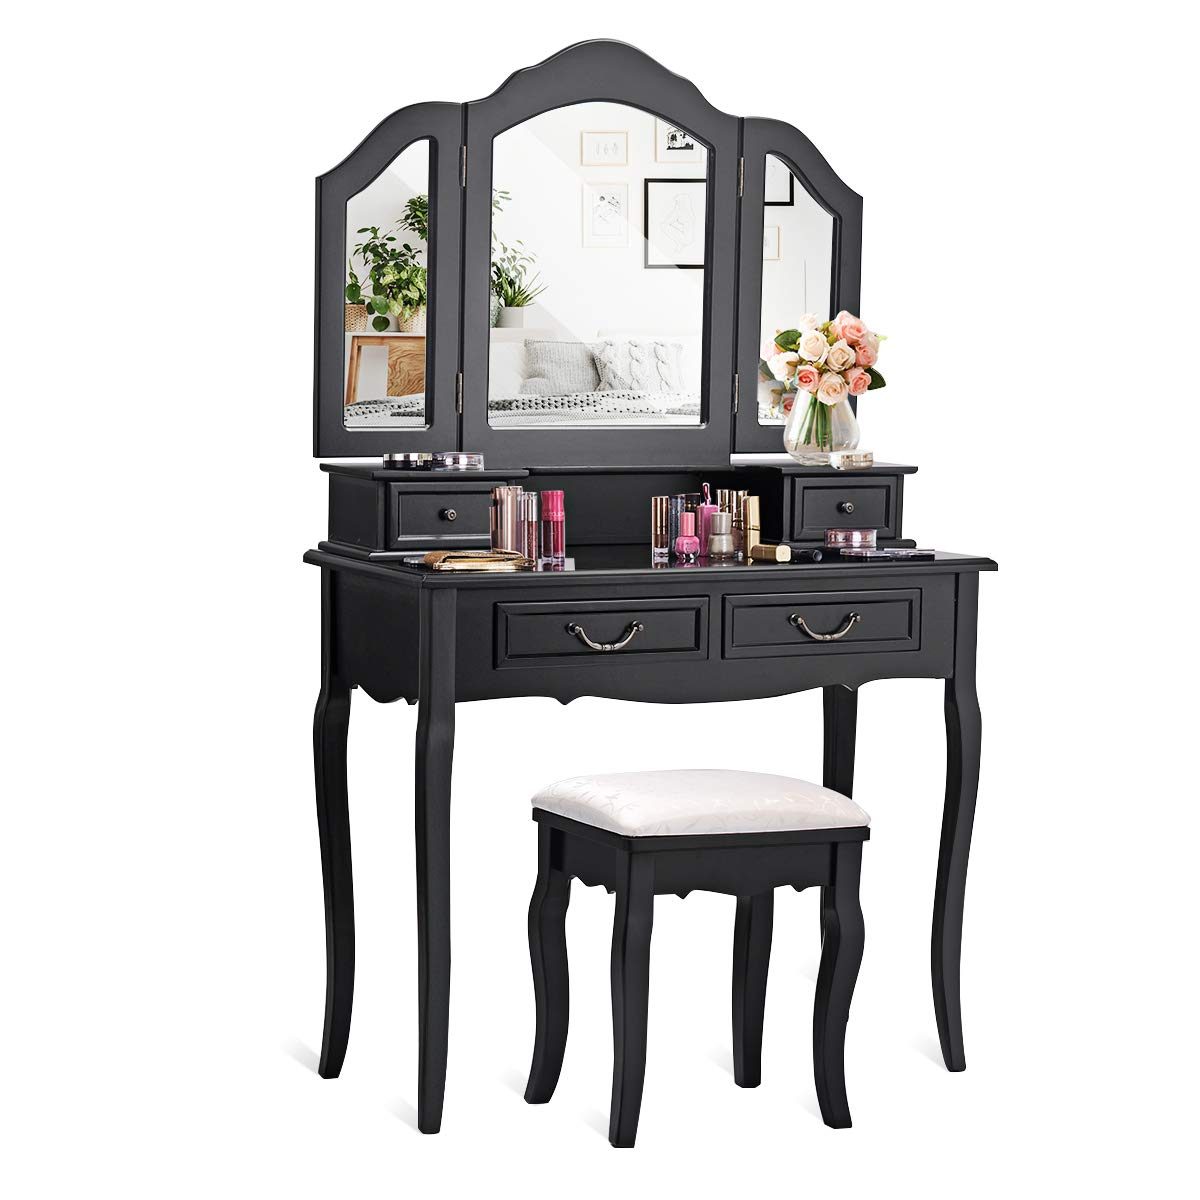 CHARMAID Vanity Set with Tri-Folding Mirror and 4 Drawers, Makeup Dressing Table with Cushioned Stool, Makeup Vanity Set for Women Girls Bedroom, Makeup Table and Stool Set (Black) by CHARMAID